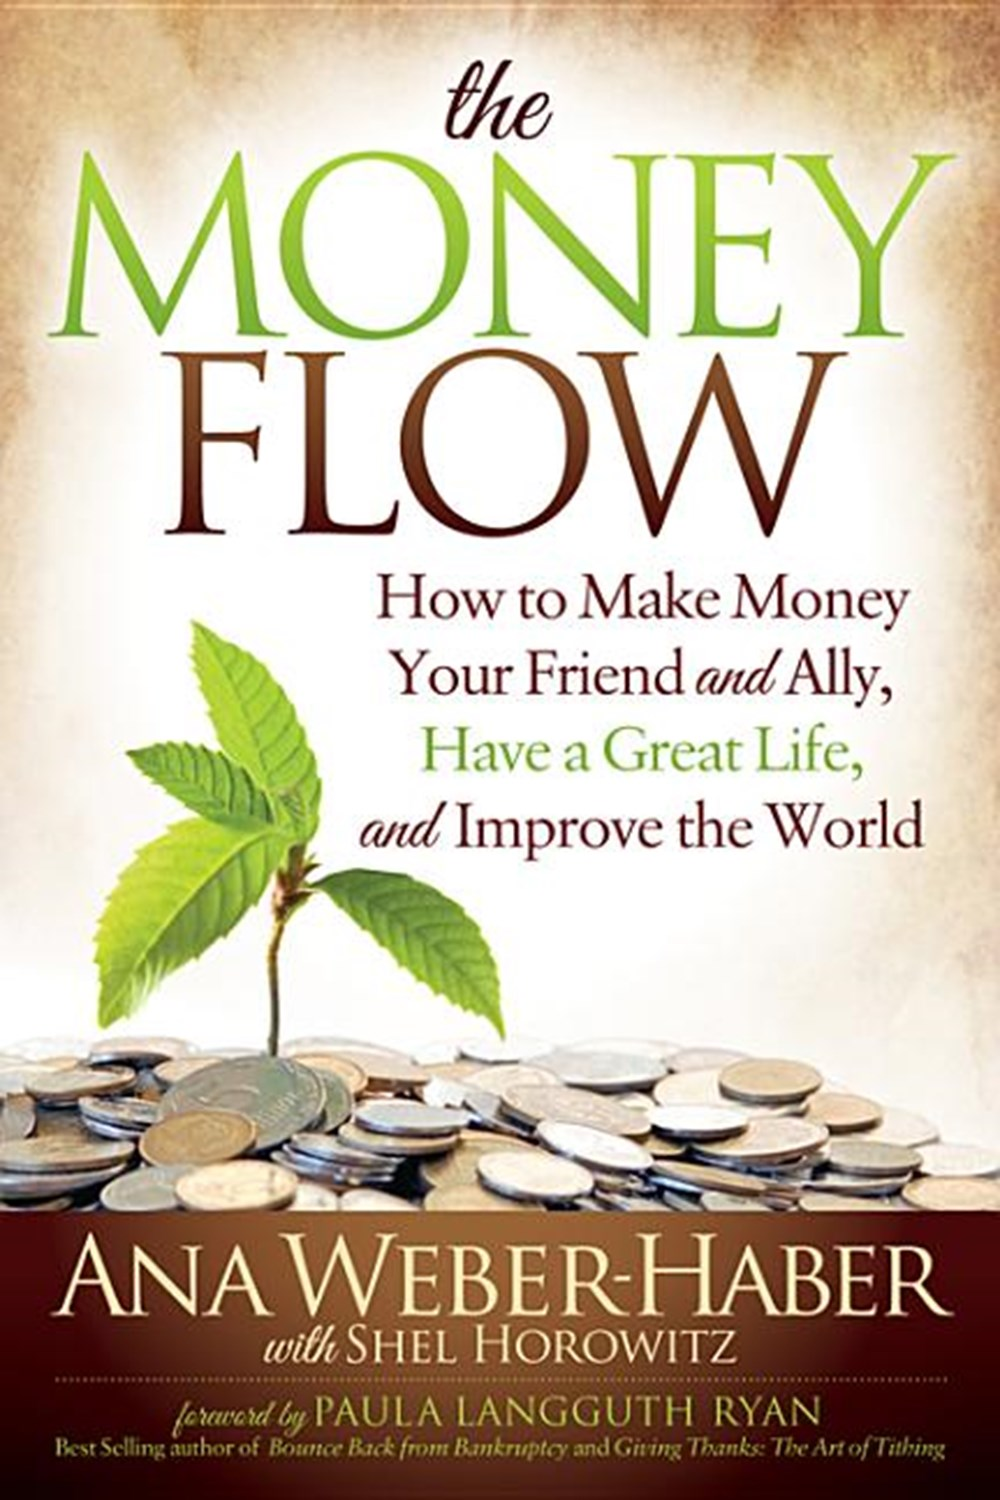 Money Flow How to Make Money Your Friend and All, Have a Great Life, and Improve the World